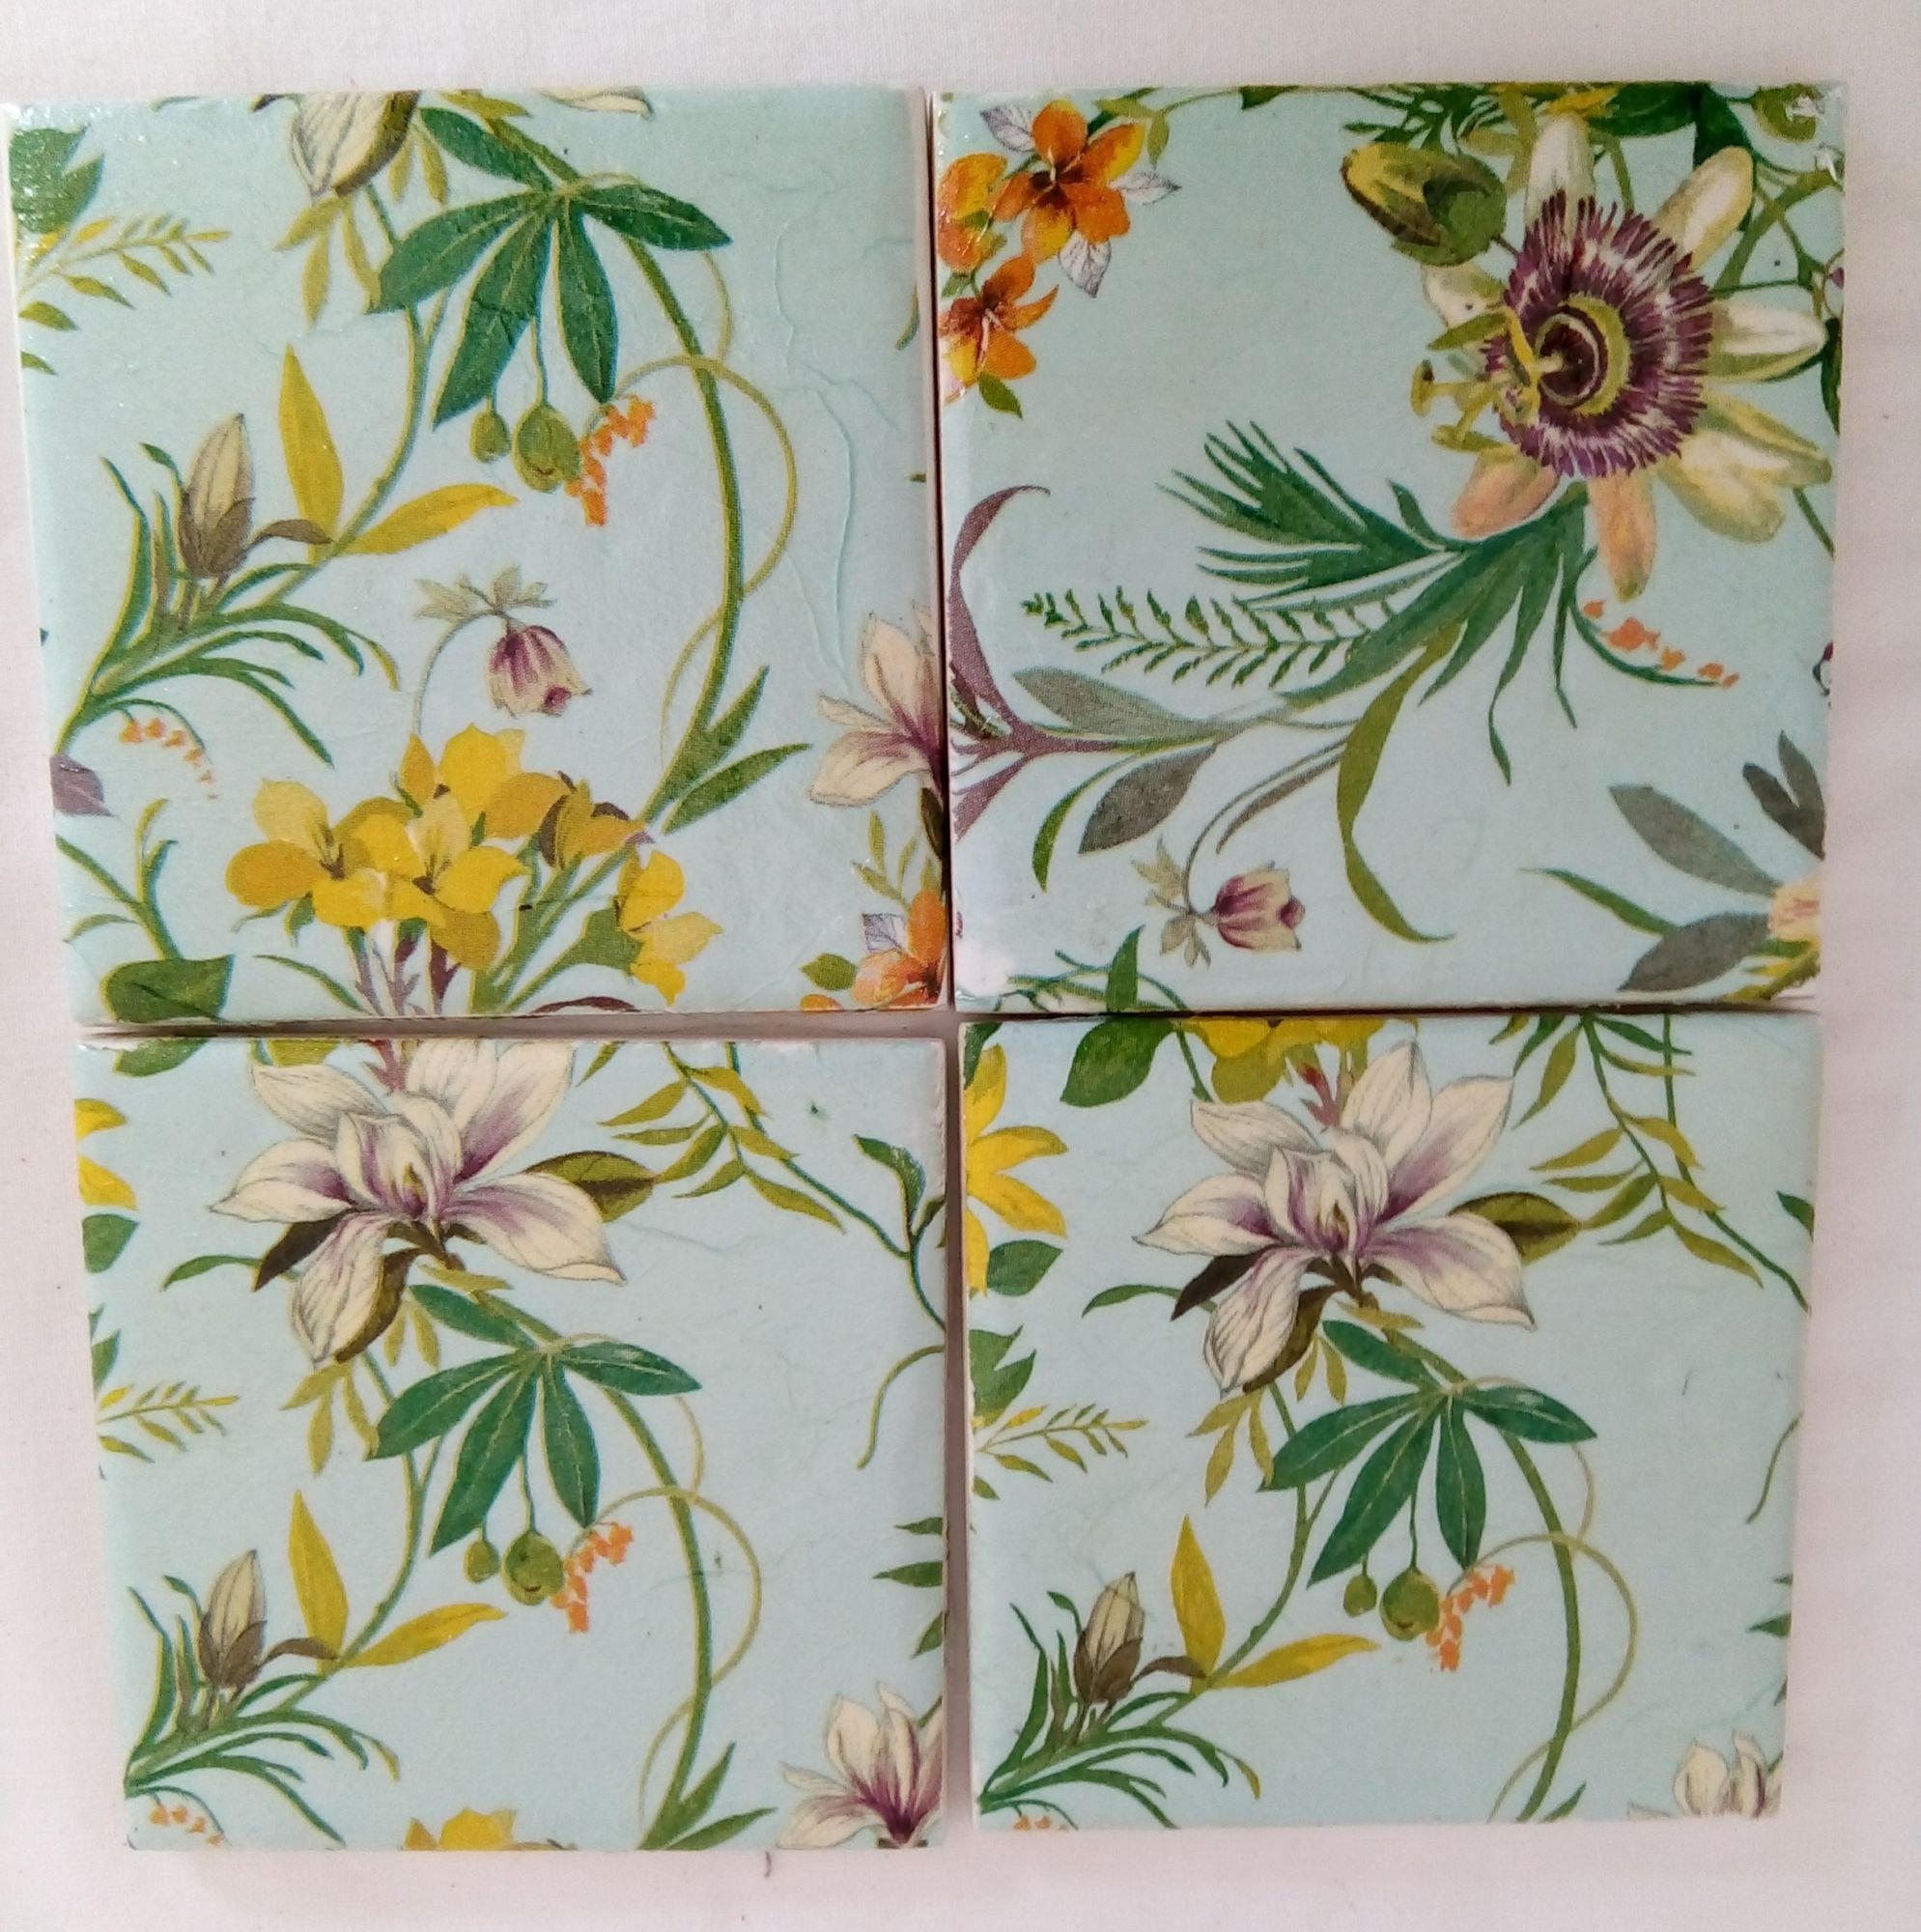 Beautiful flower design ceramic coasters apleyeverafter a set of 4 ceramic flower coasters also available in stone coasters click on below to choose which type of coaster you prefer the price shown is for the izmirmasajfo